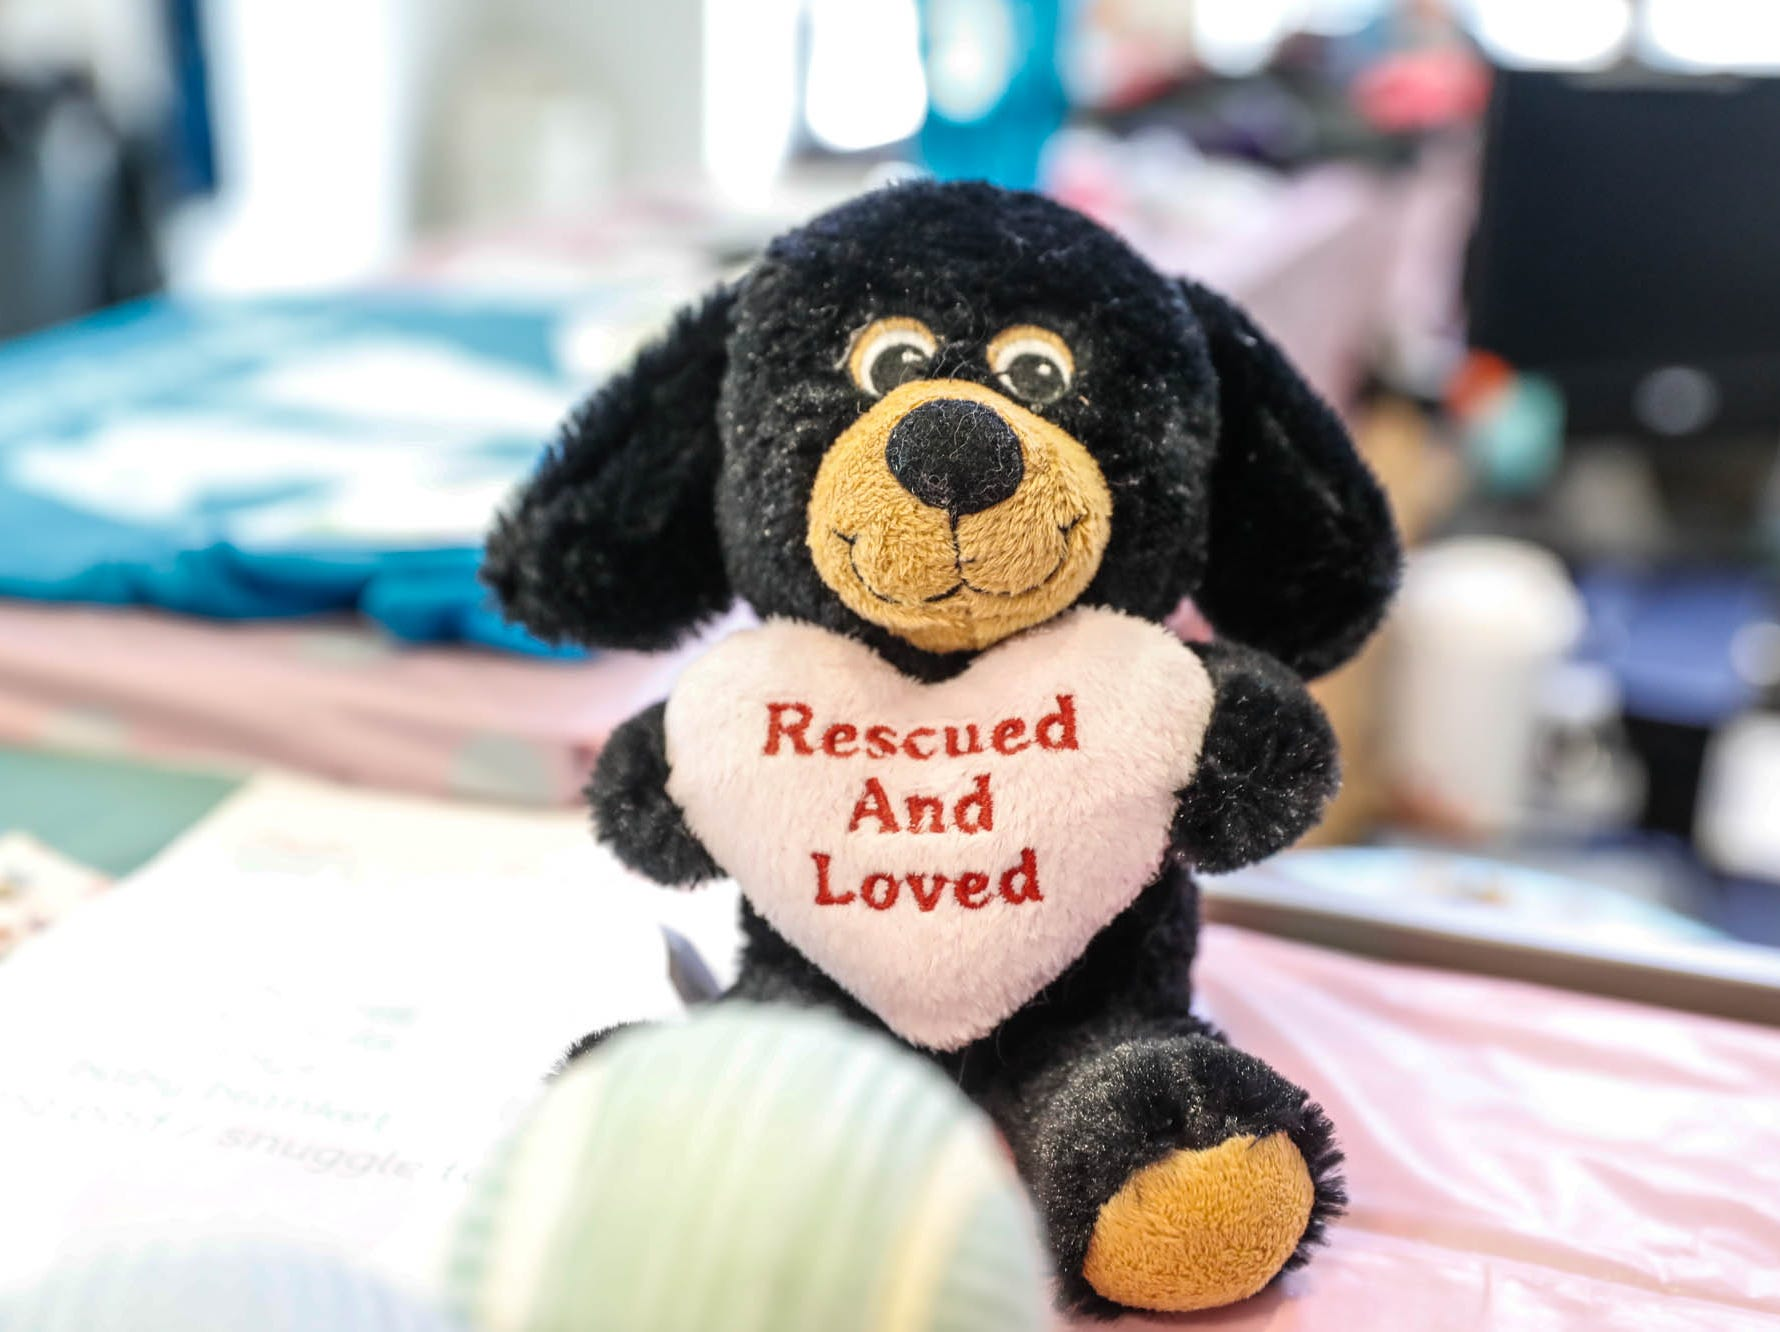 A stuffed dog greets guests at  Indy Humane during their Puppy and Kitten Baby Shower, held at Indy Humane on Sunday, March 10, 2019. The event educates families on Indy Humane's foster care program, as Fosters are needed in the spring during puppy and kitten season.